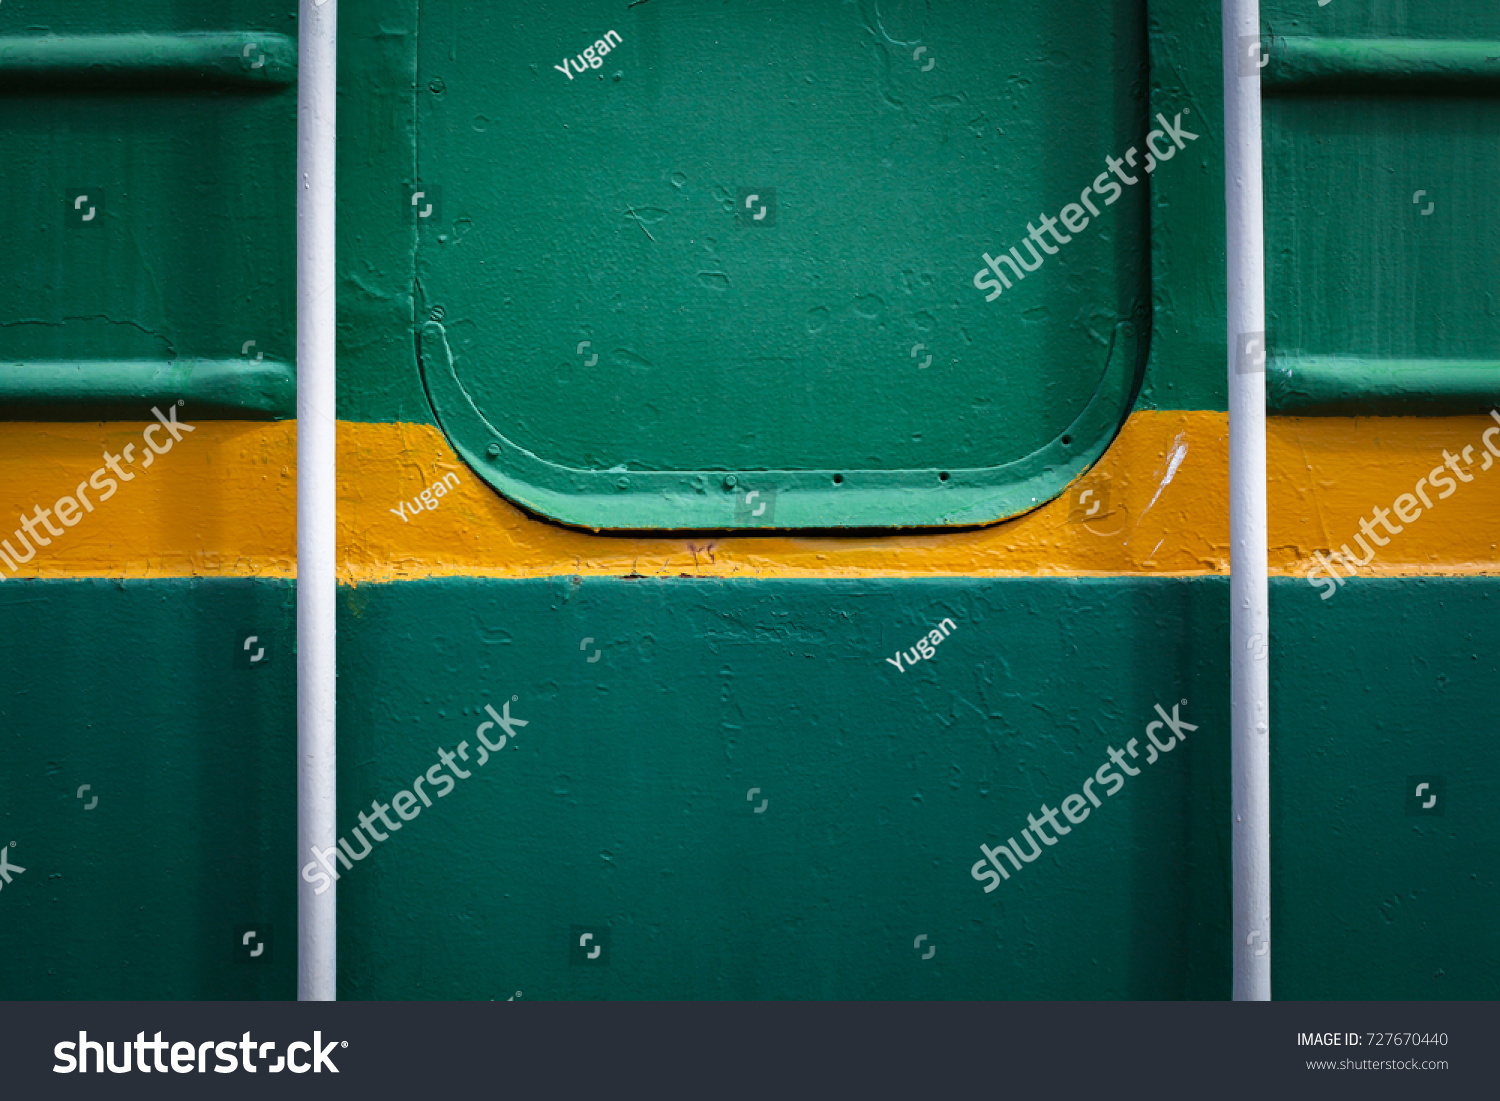 The handrails near the door to the train. Paint smudges on the surface. The green background. Painted metal surface. The yellow line on a green background. Metal painted green.